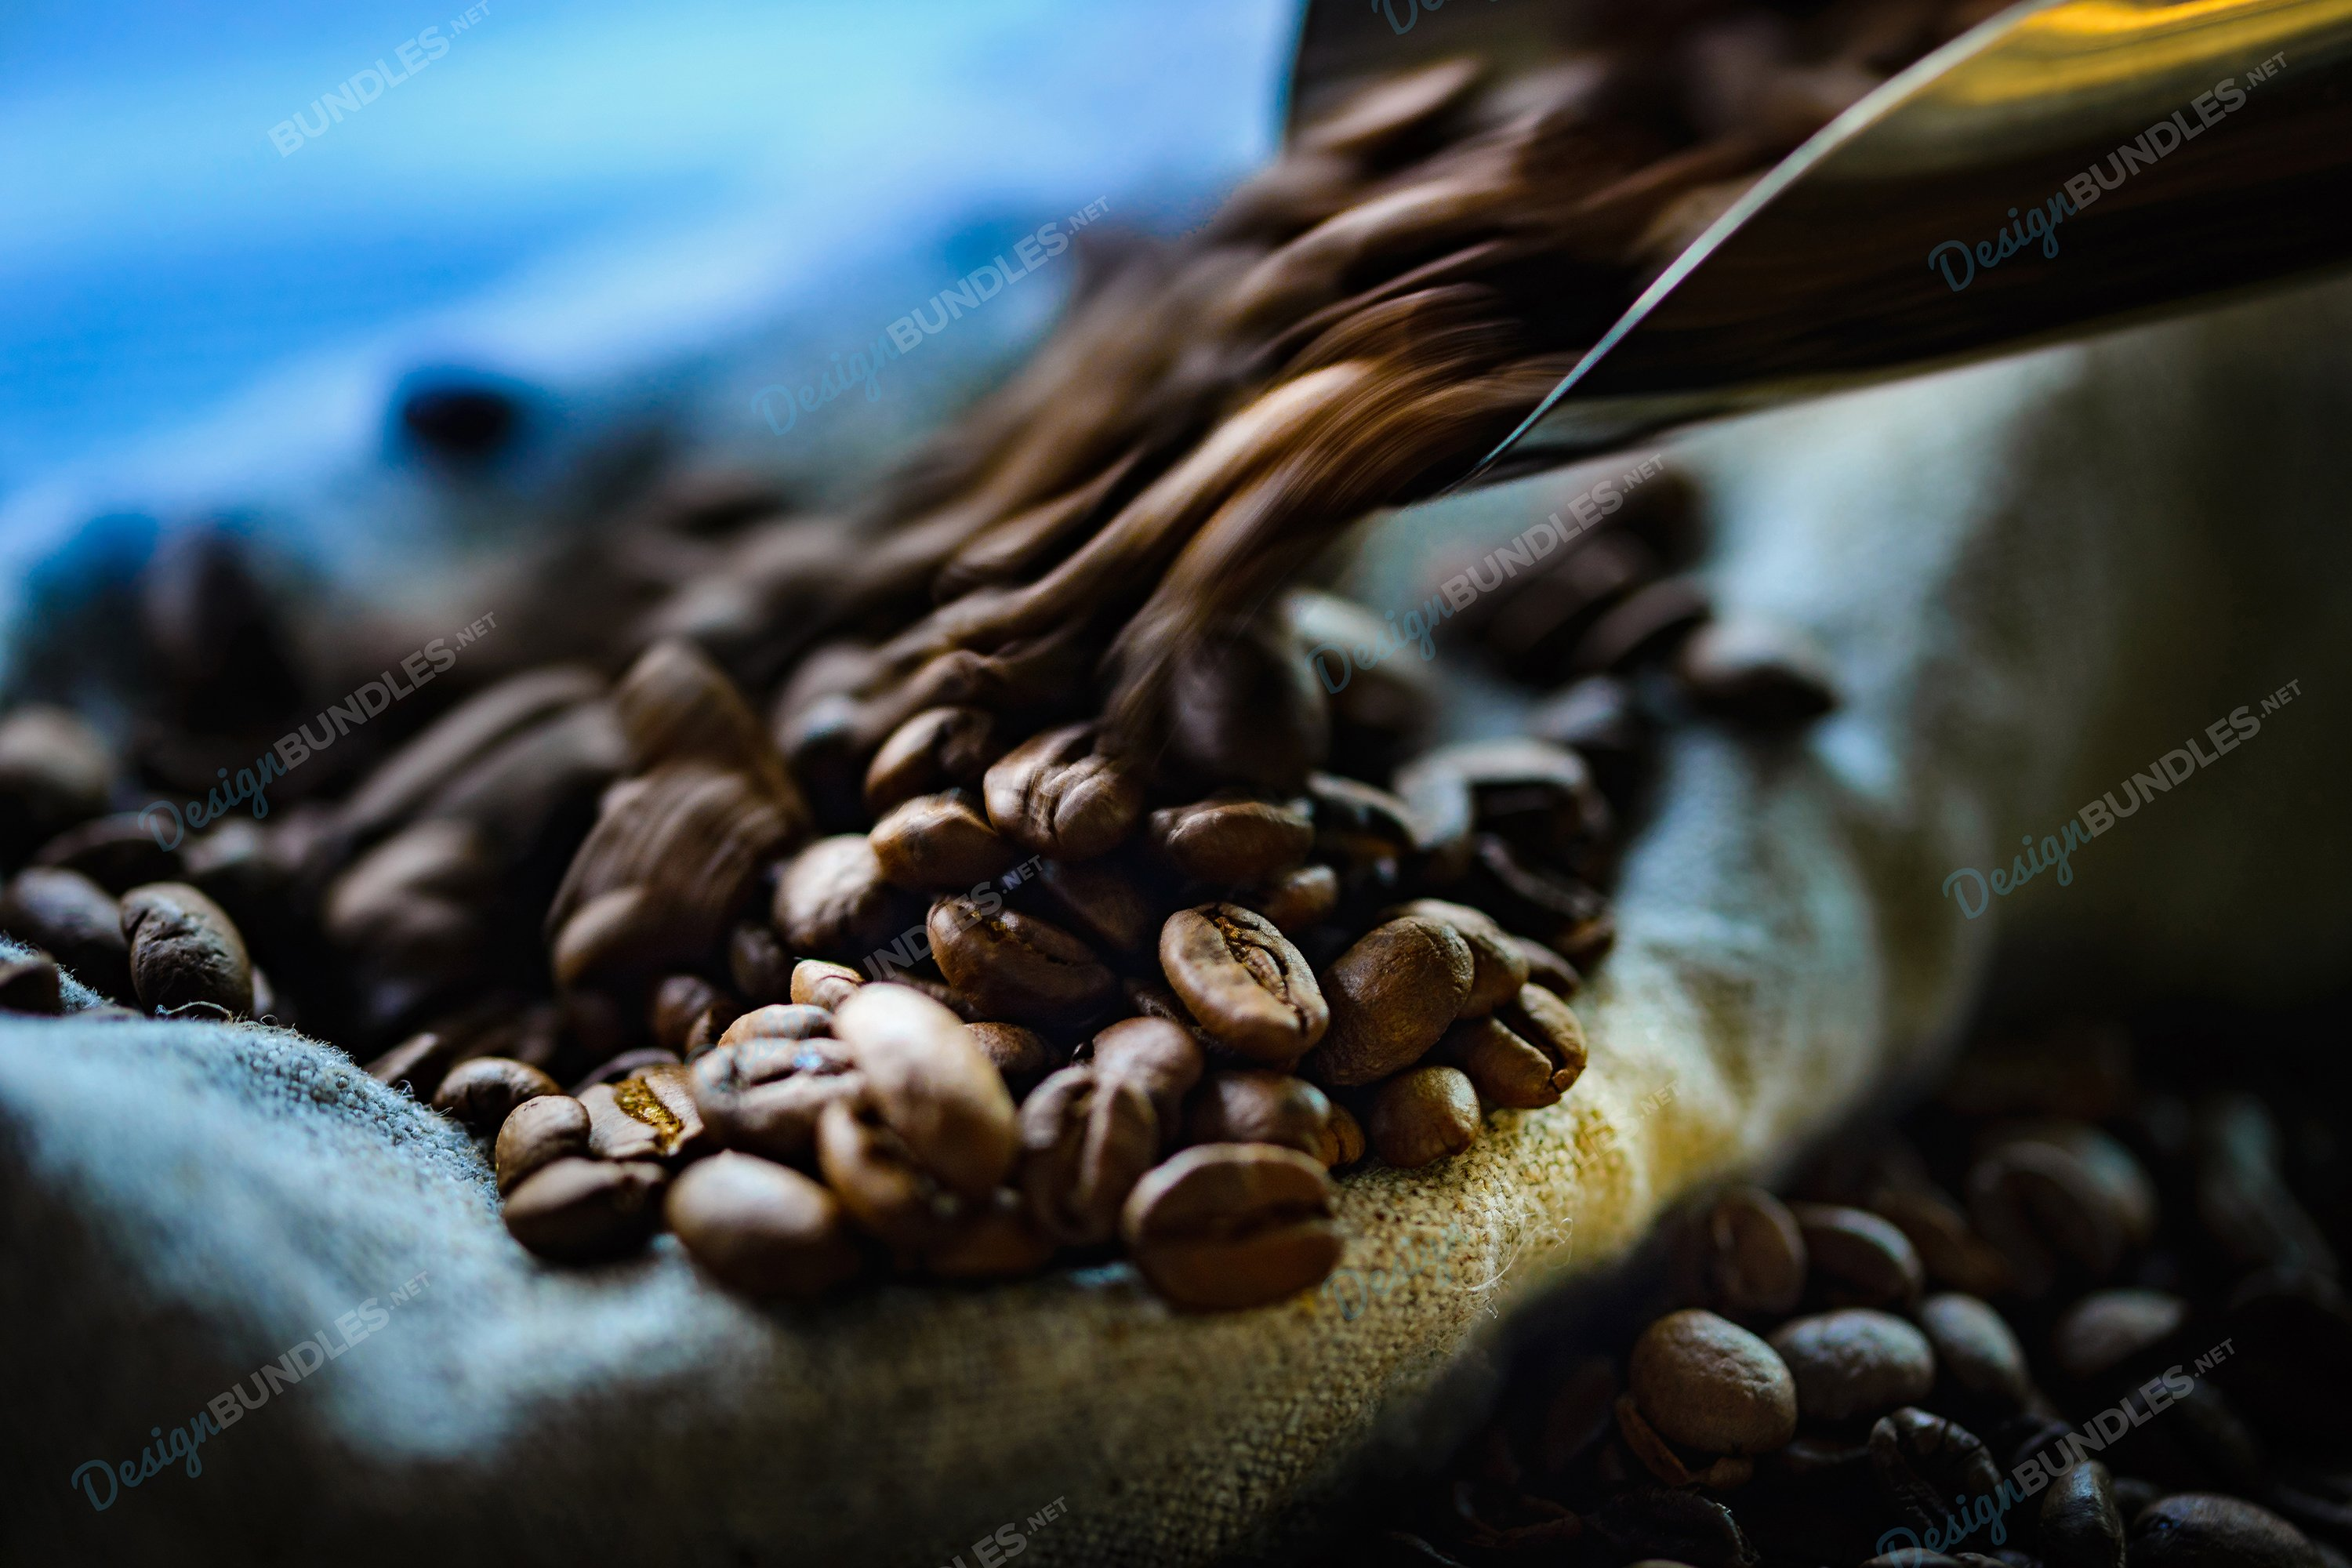 Stock Photo - Close up of roasted coffee beans in sack bag example image 1